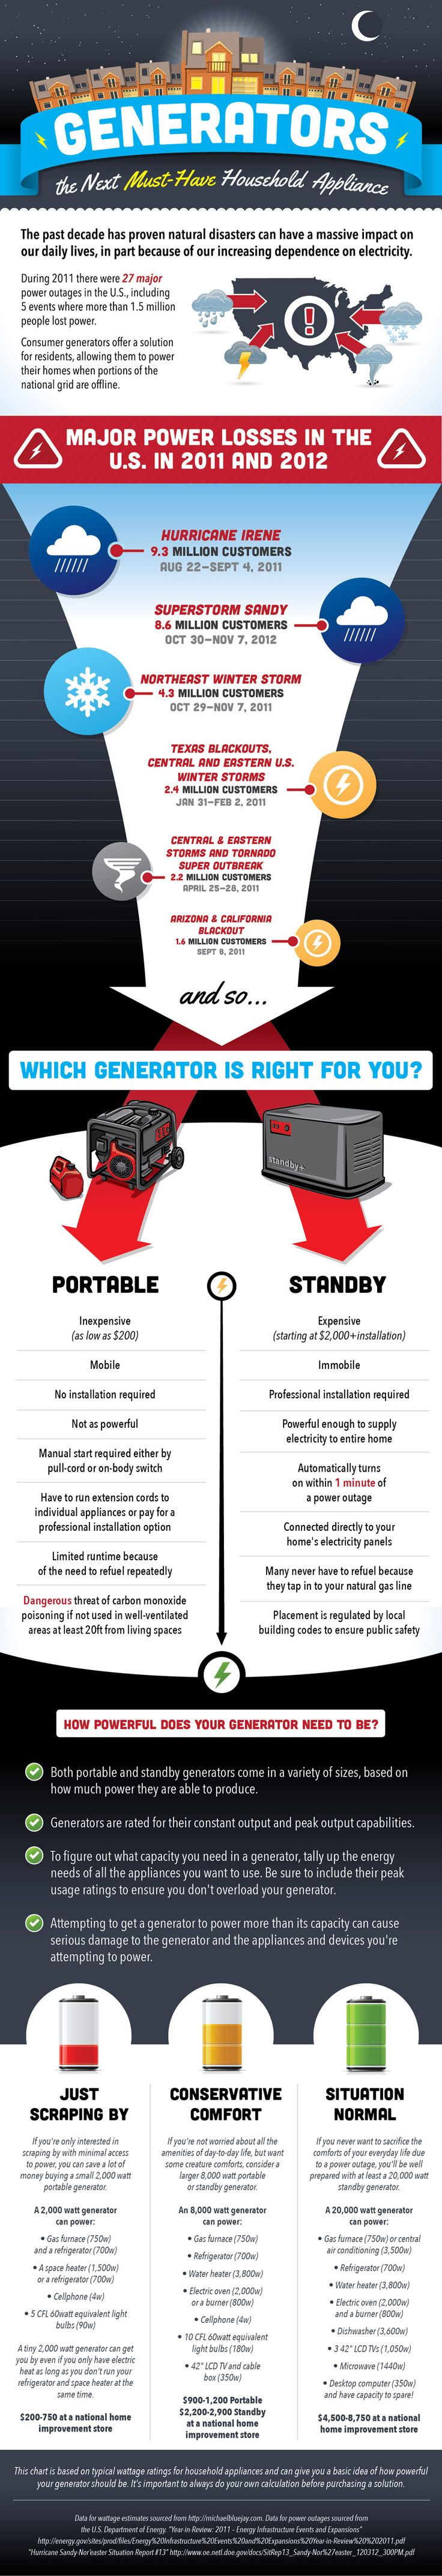 Generators - the next must-have household appliance